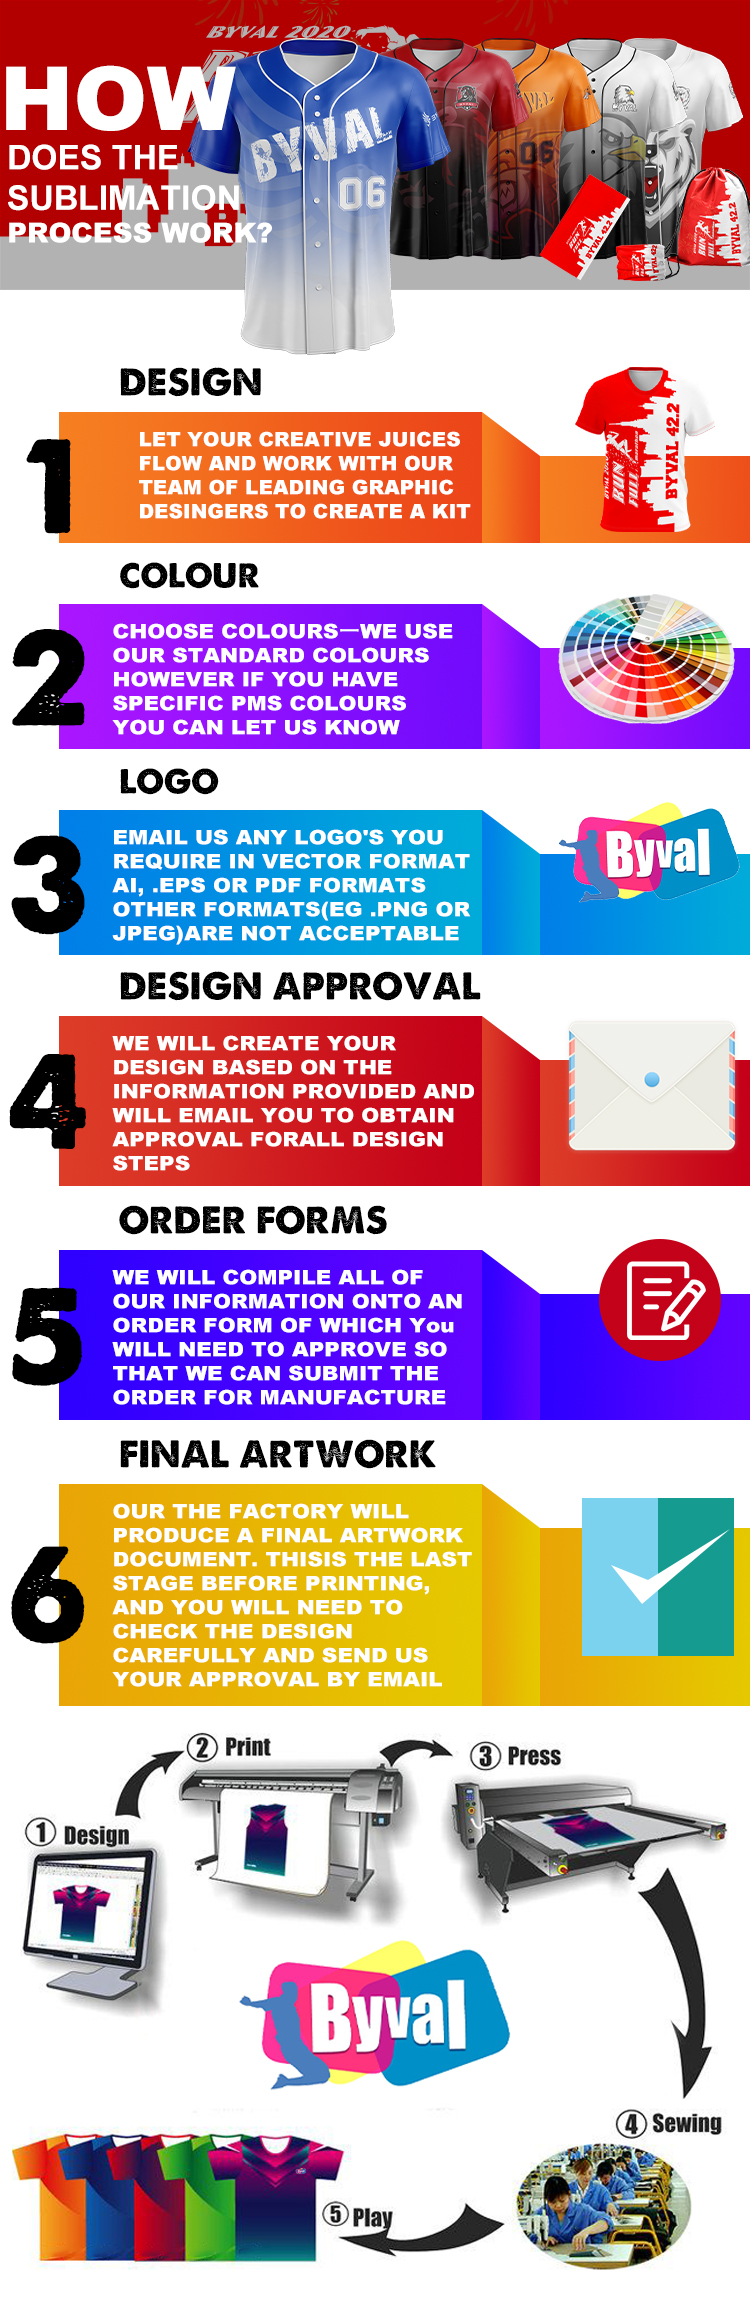 Byval cheap custom your designs cheap factory wholesale men short sleeve dye sublimation t-shirt full printing t shirts in bulk